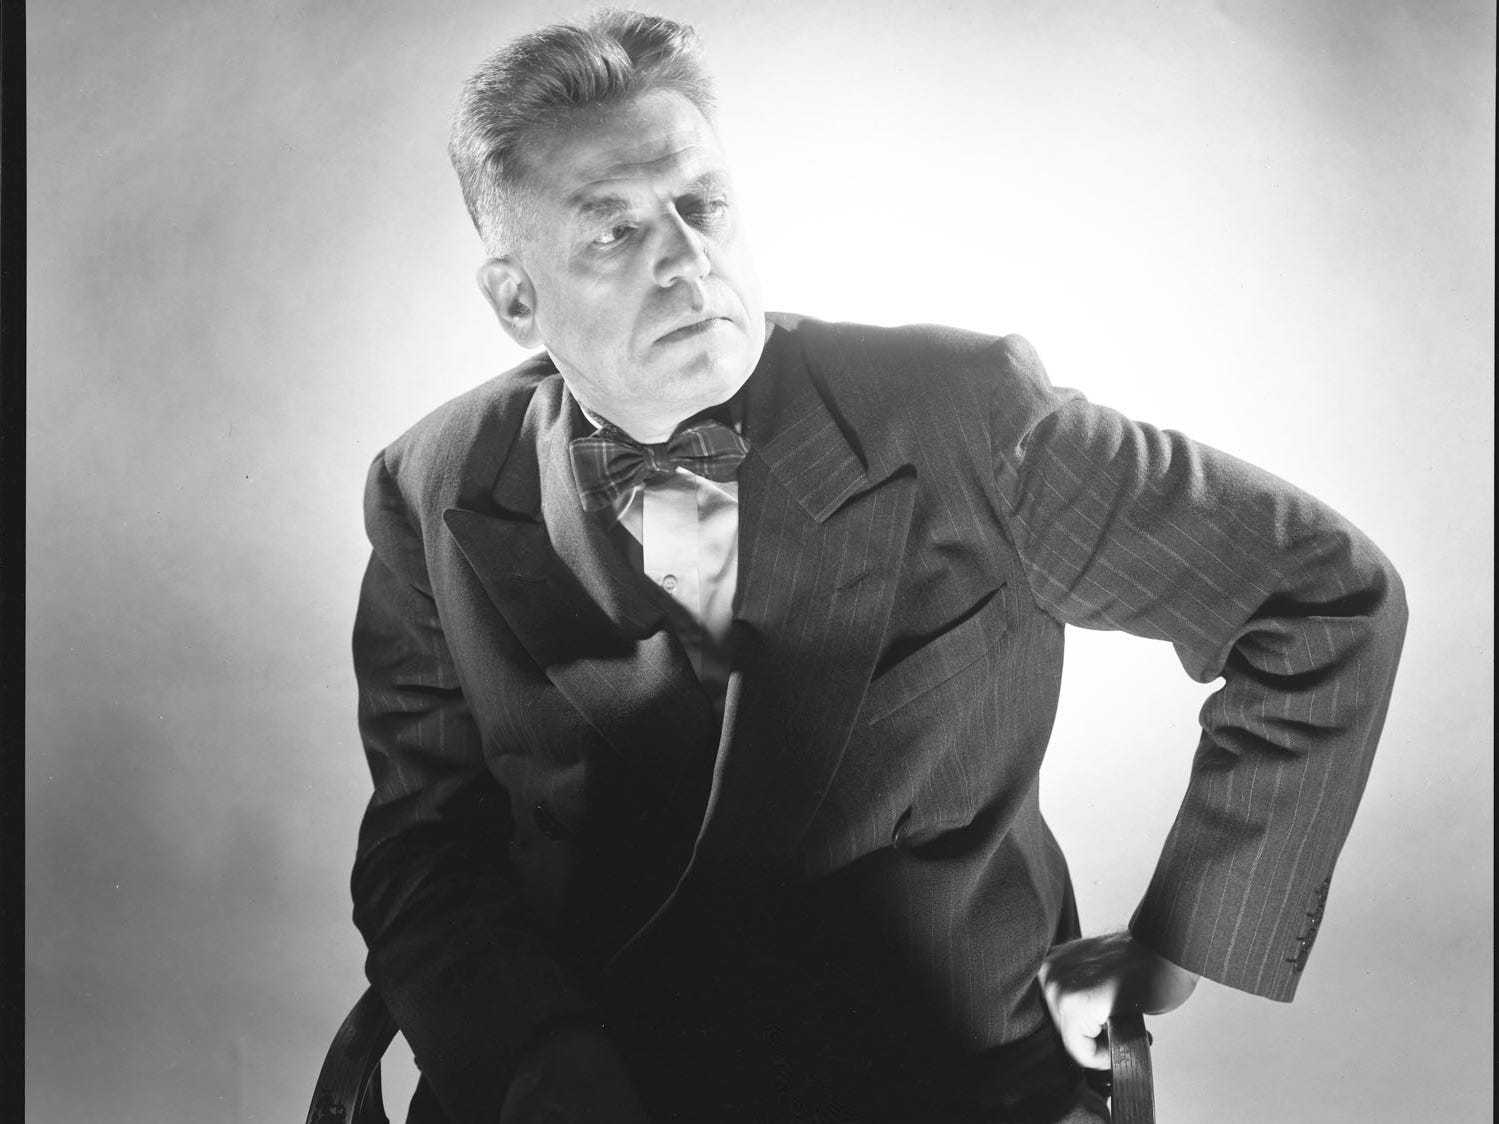 "George Platt Lynes (American, 1907–1955), Portrait of Alfred Kinsey, 1950, gelatin silver print, 7 × 9 in.  ""Sensual / Sexual / Social:  The Photography of George Platt Lynes"" exhibit will be at Newfields, Sept. 30, 2018 through Feb. 24, 2019.  Photo is from the Collections of the Kinsey Institute, Indiana University.  © Estate of George Platt Lynes."